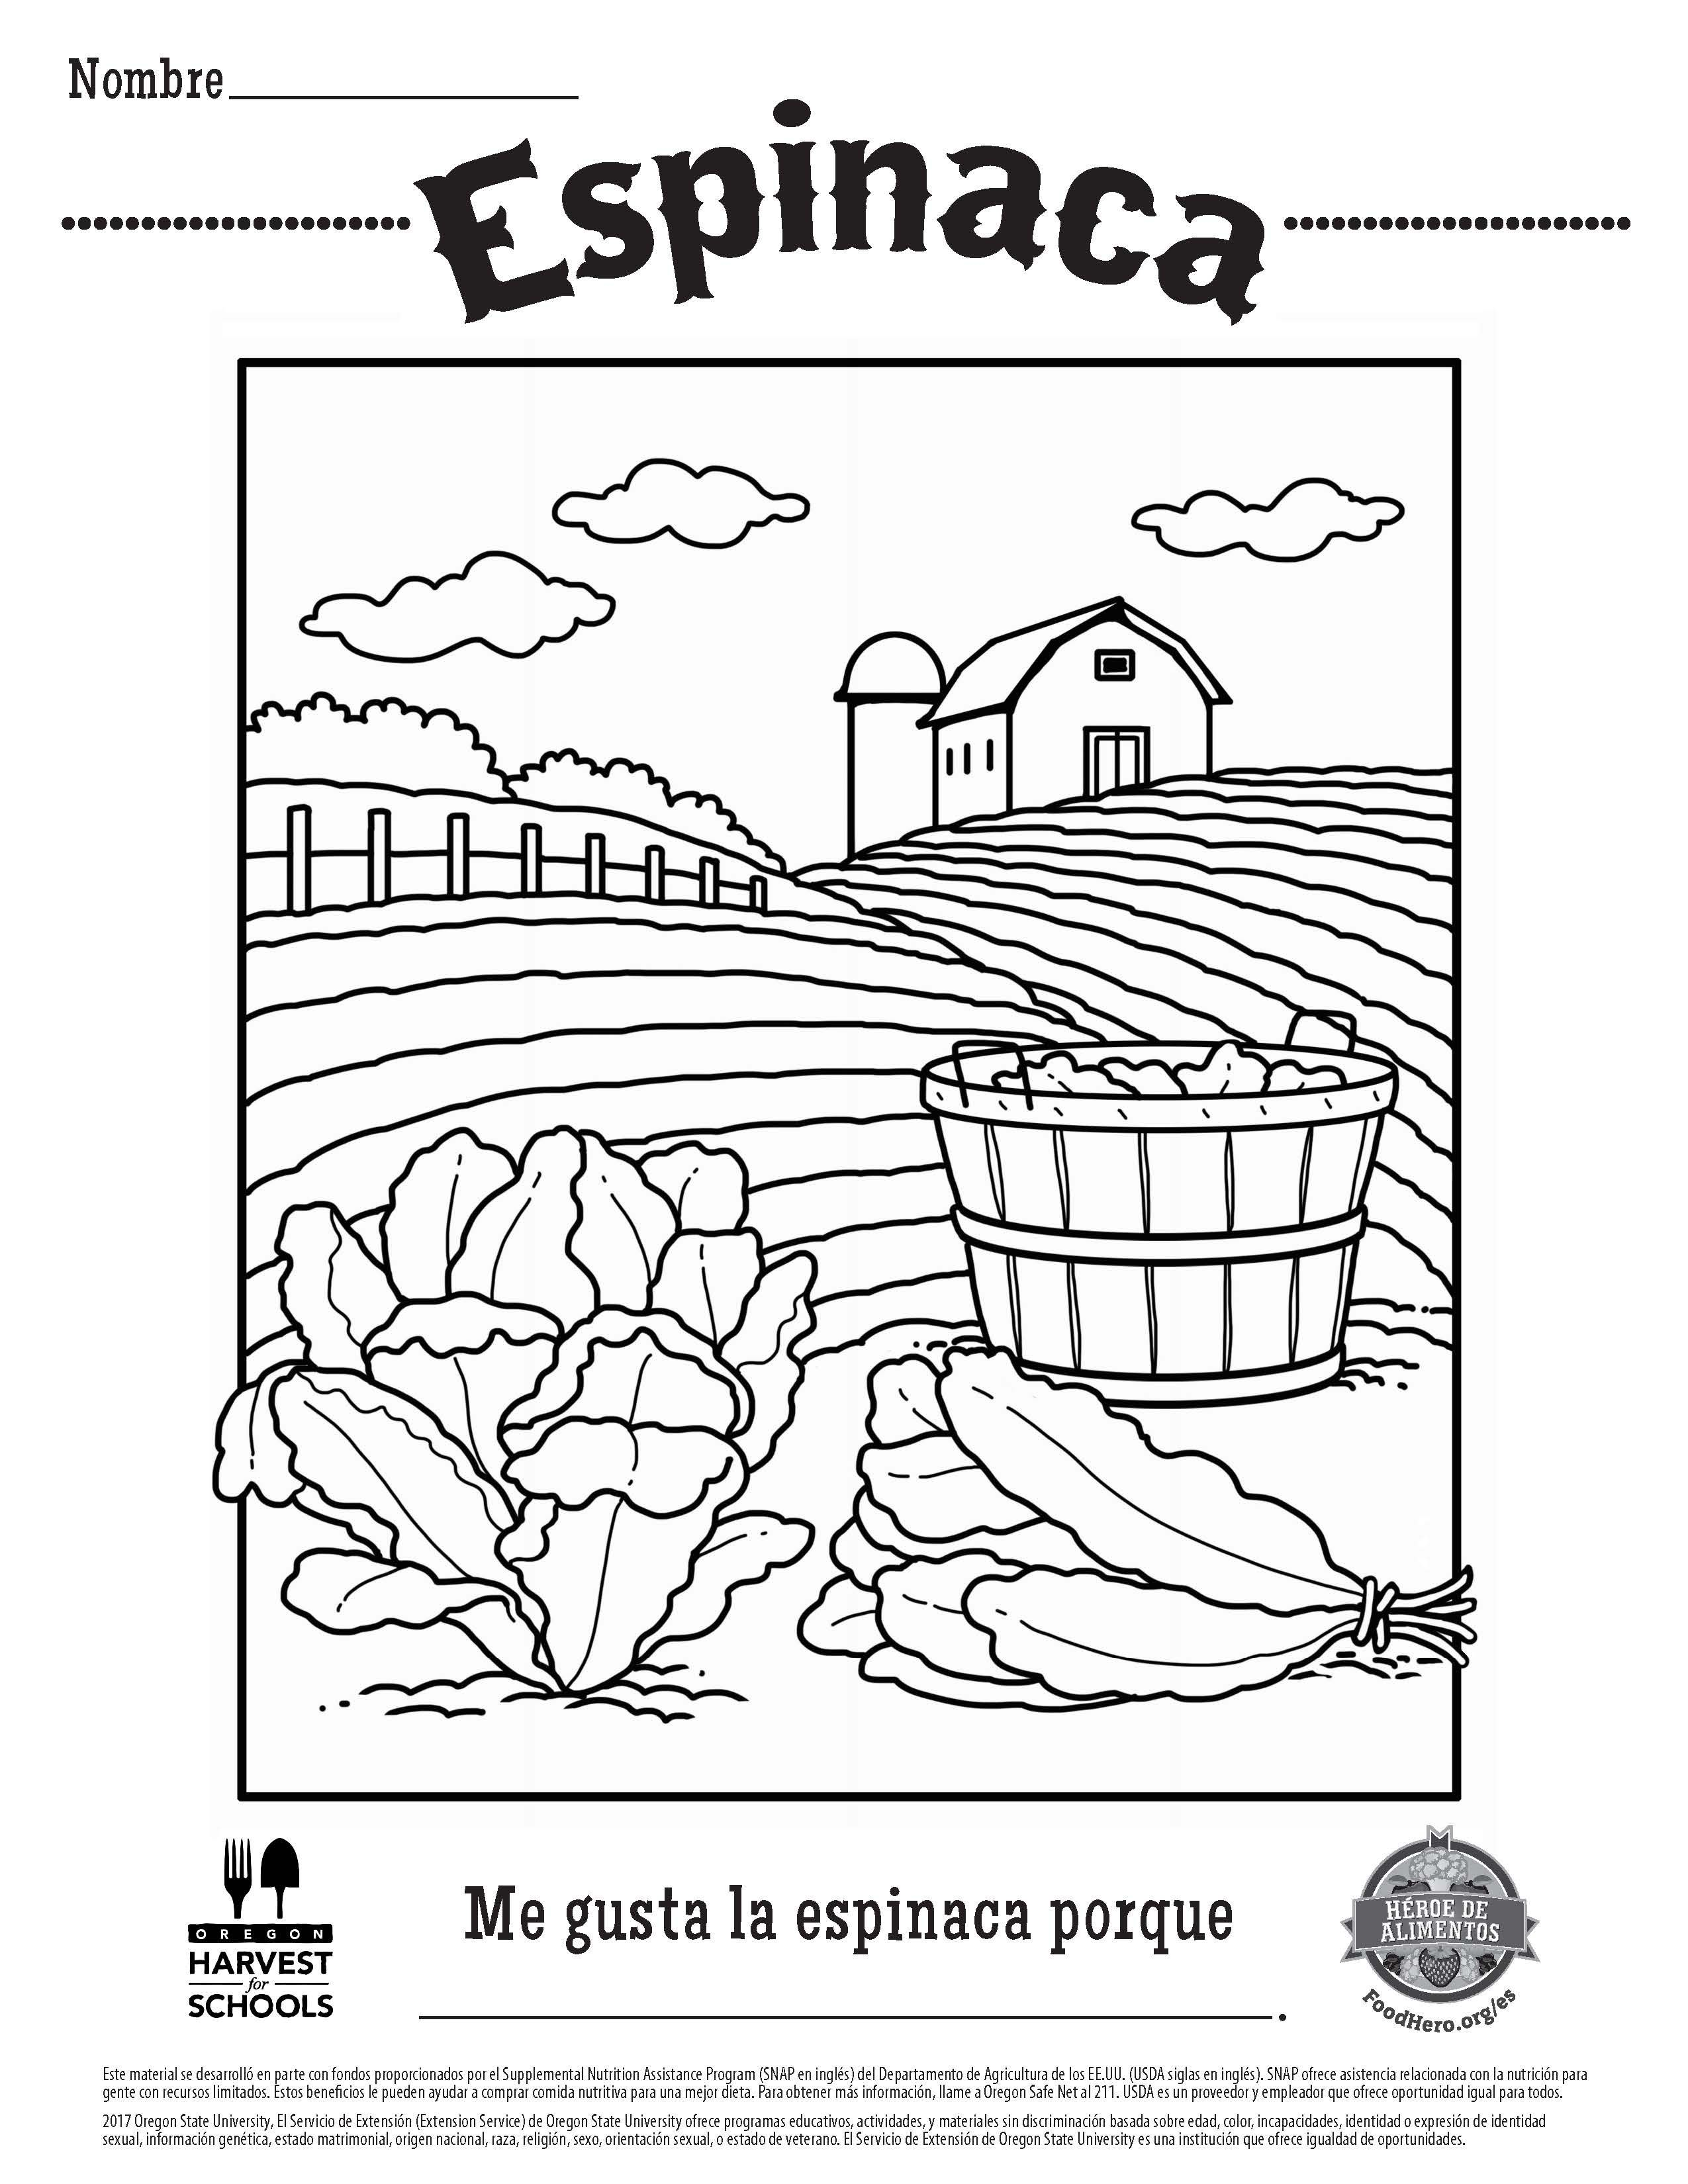 Spinach in Spanish Food Hero Free Printable Childrens Coloring